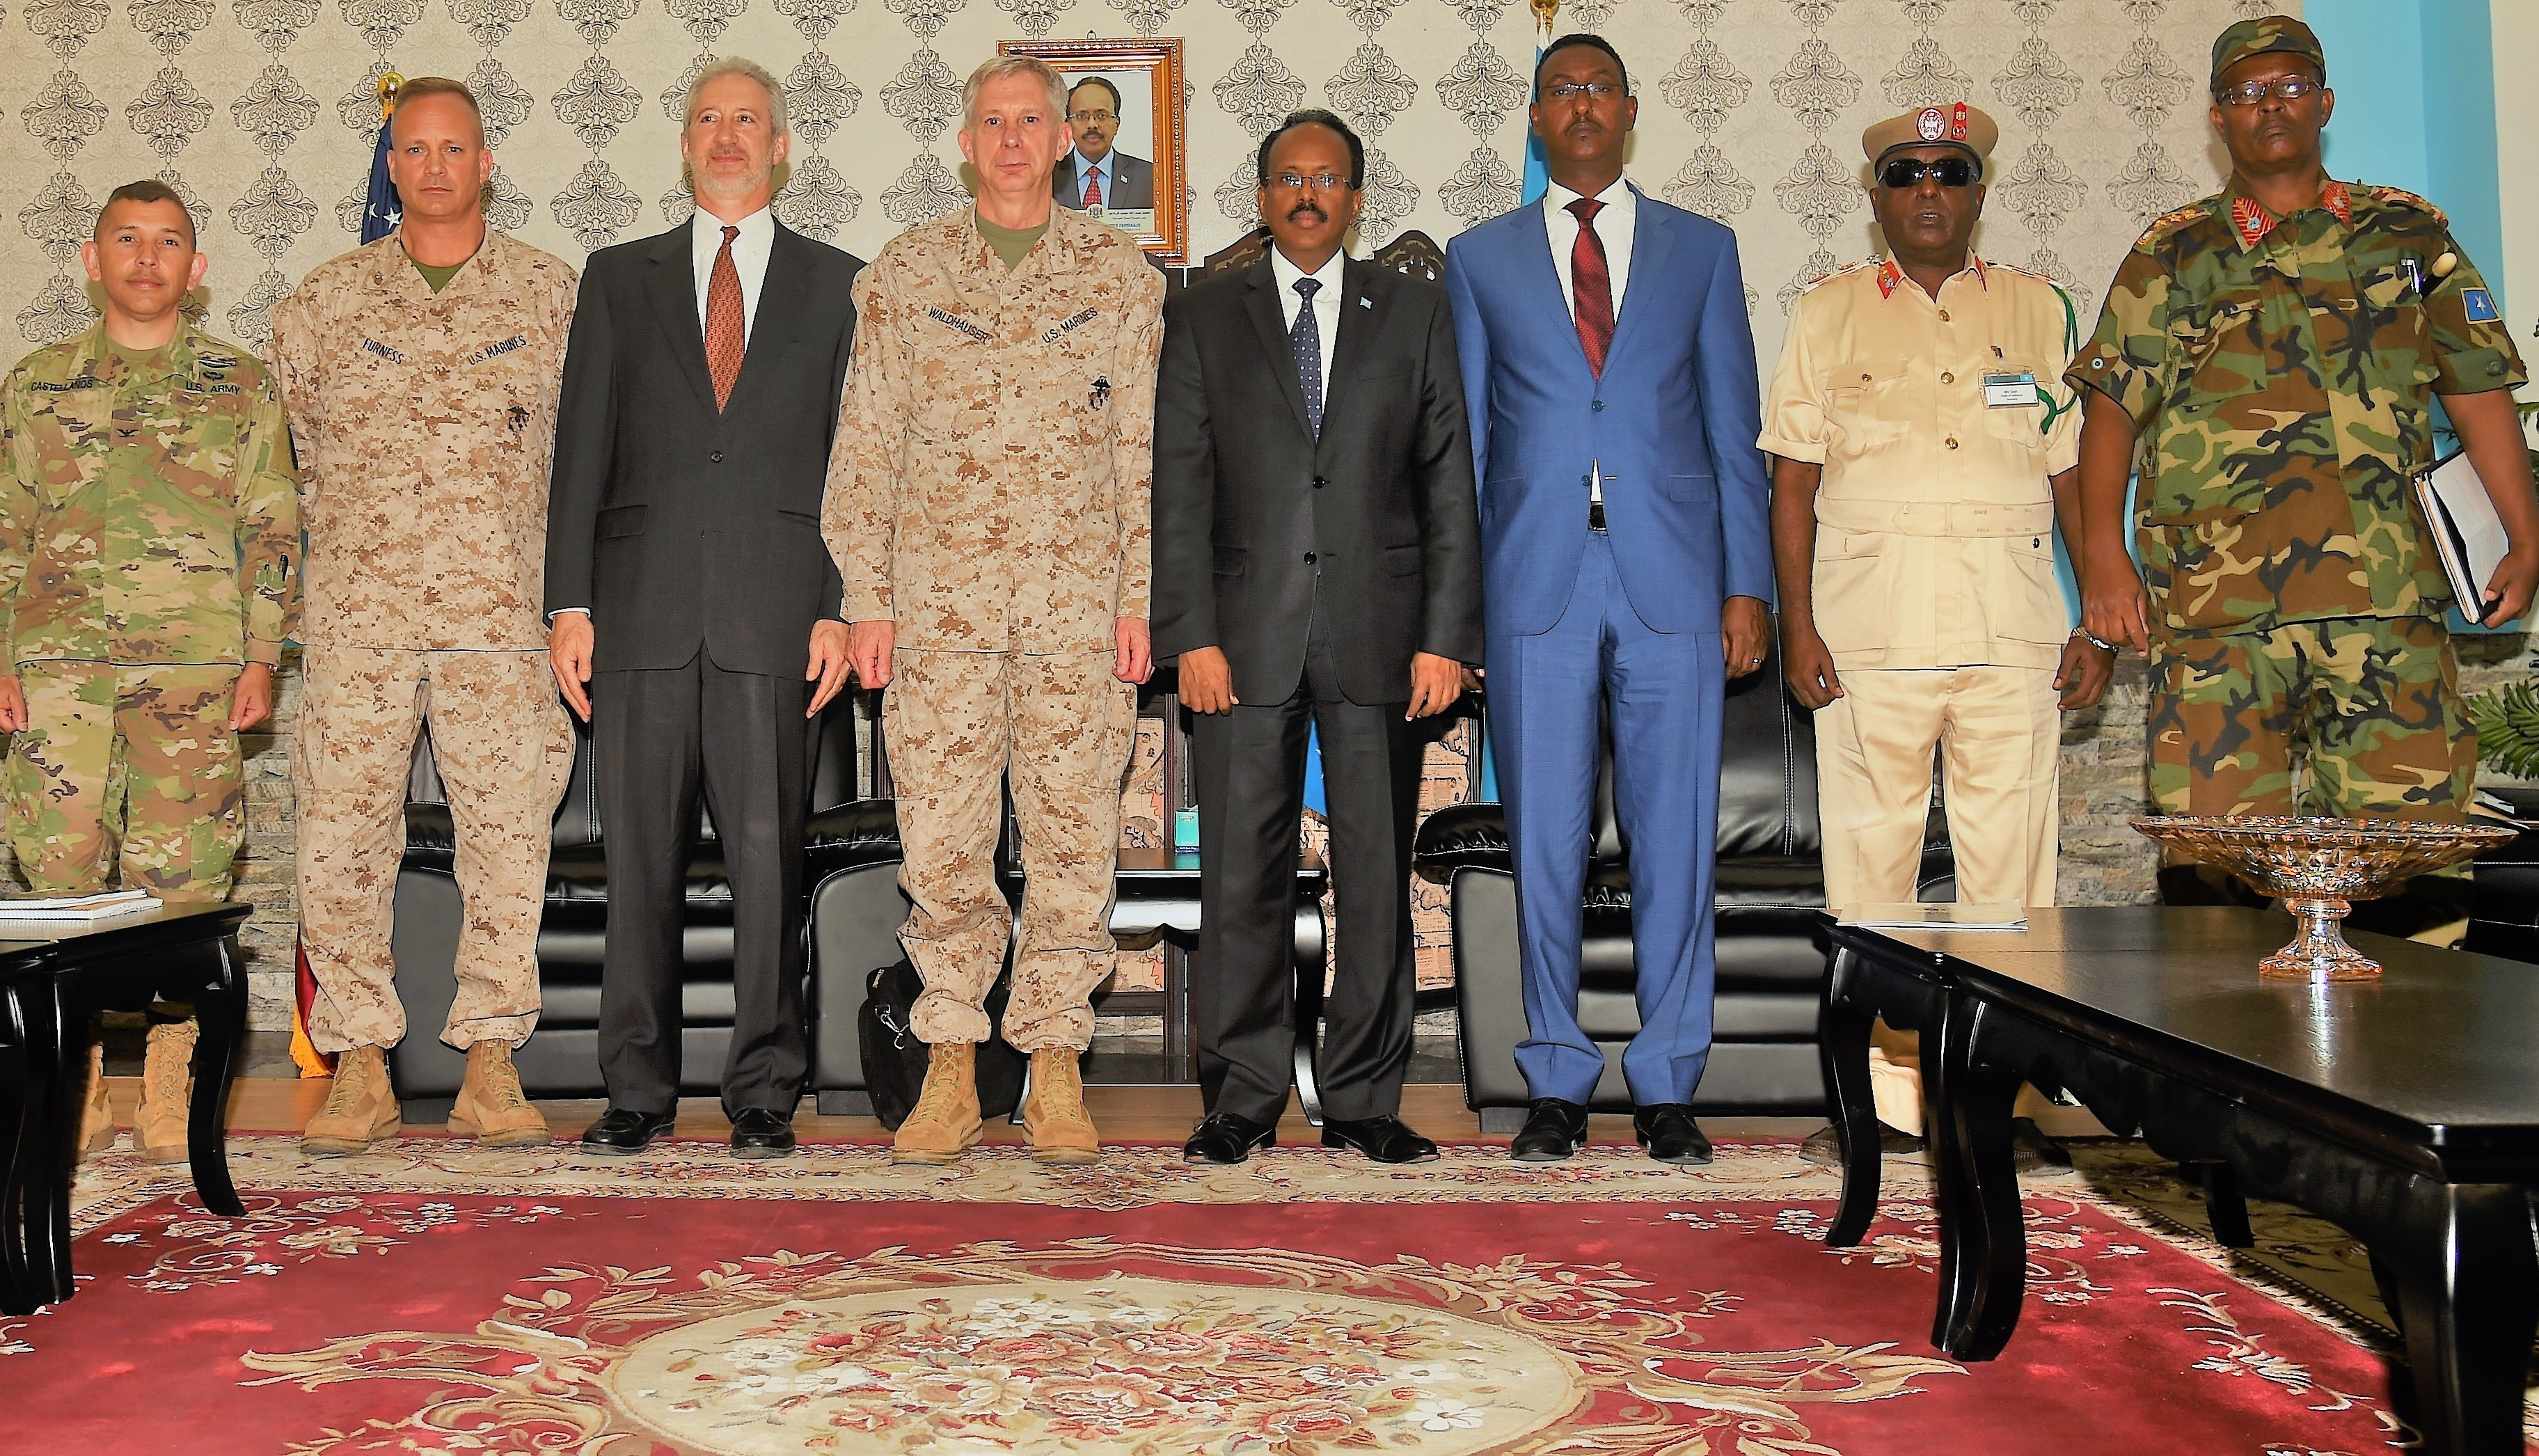 "U.S. Africa Command commander U.S. Marine Corps Gen. Thomas D. Waldhauser, U.S. and President of Somalia Mohamed Abdullahi Mohamed, known by his nickname ""Farmaajo,"" stand alongside their respective dignitaries and military coterie after their meeting held at Mogadishu International Airport, Somalia, April 29, 2017. With its partners, USAFRICOM works to neutralize transnational threats, protect U.S. personnel and facilities, prevent and mitigate conflict, and build defense capability to promote regional stability and prosperity. (U.S. Air National Guard photo by Tech. Sgt. Andria Allmond/Released)"